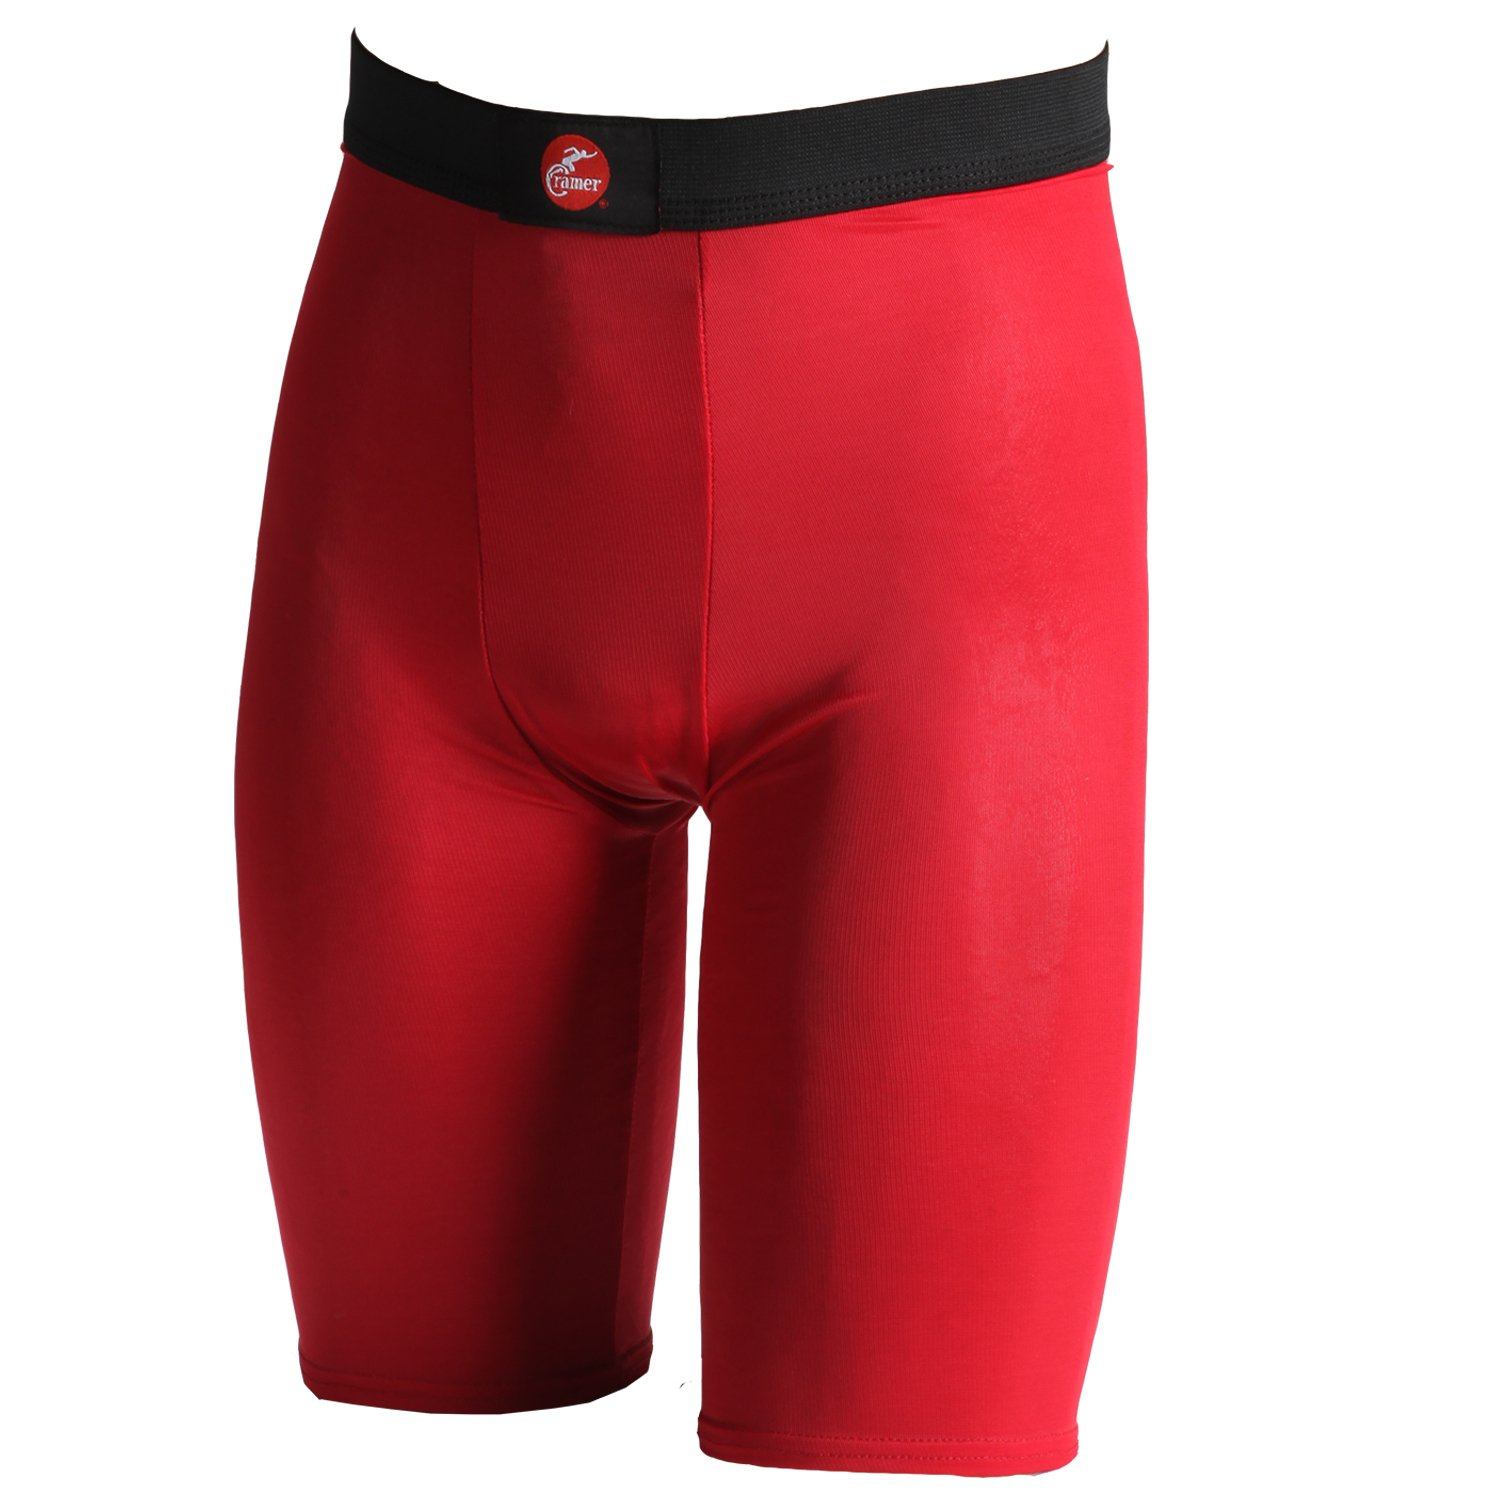 Cramer Men's Compression Shorts for Quads, Groin and Hamstring Support, Athletic Compression Gear, Performance Compression Shorts, Anti-Bacterial and Moisture-Wicking Fabric